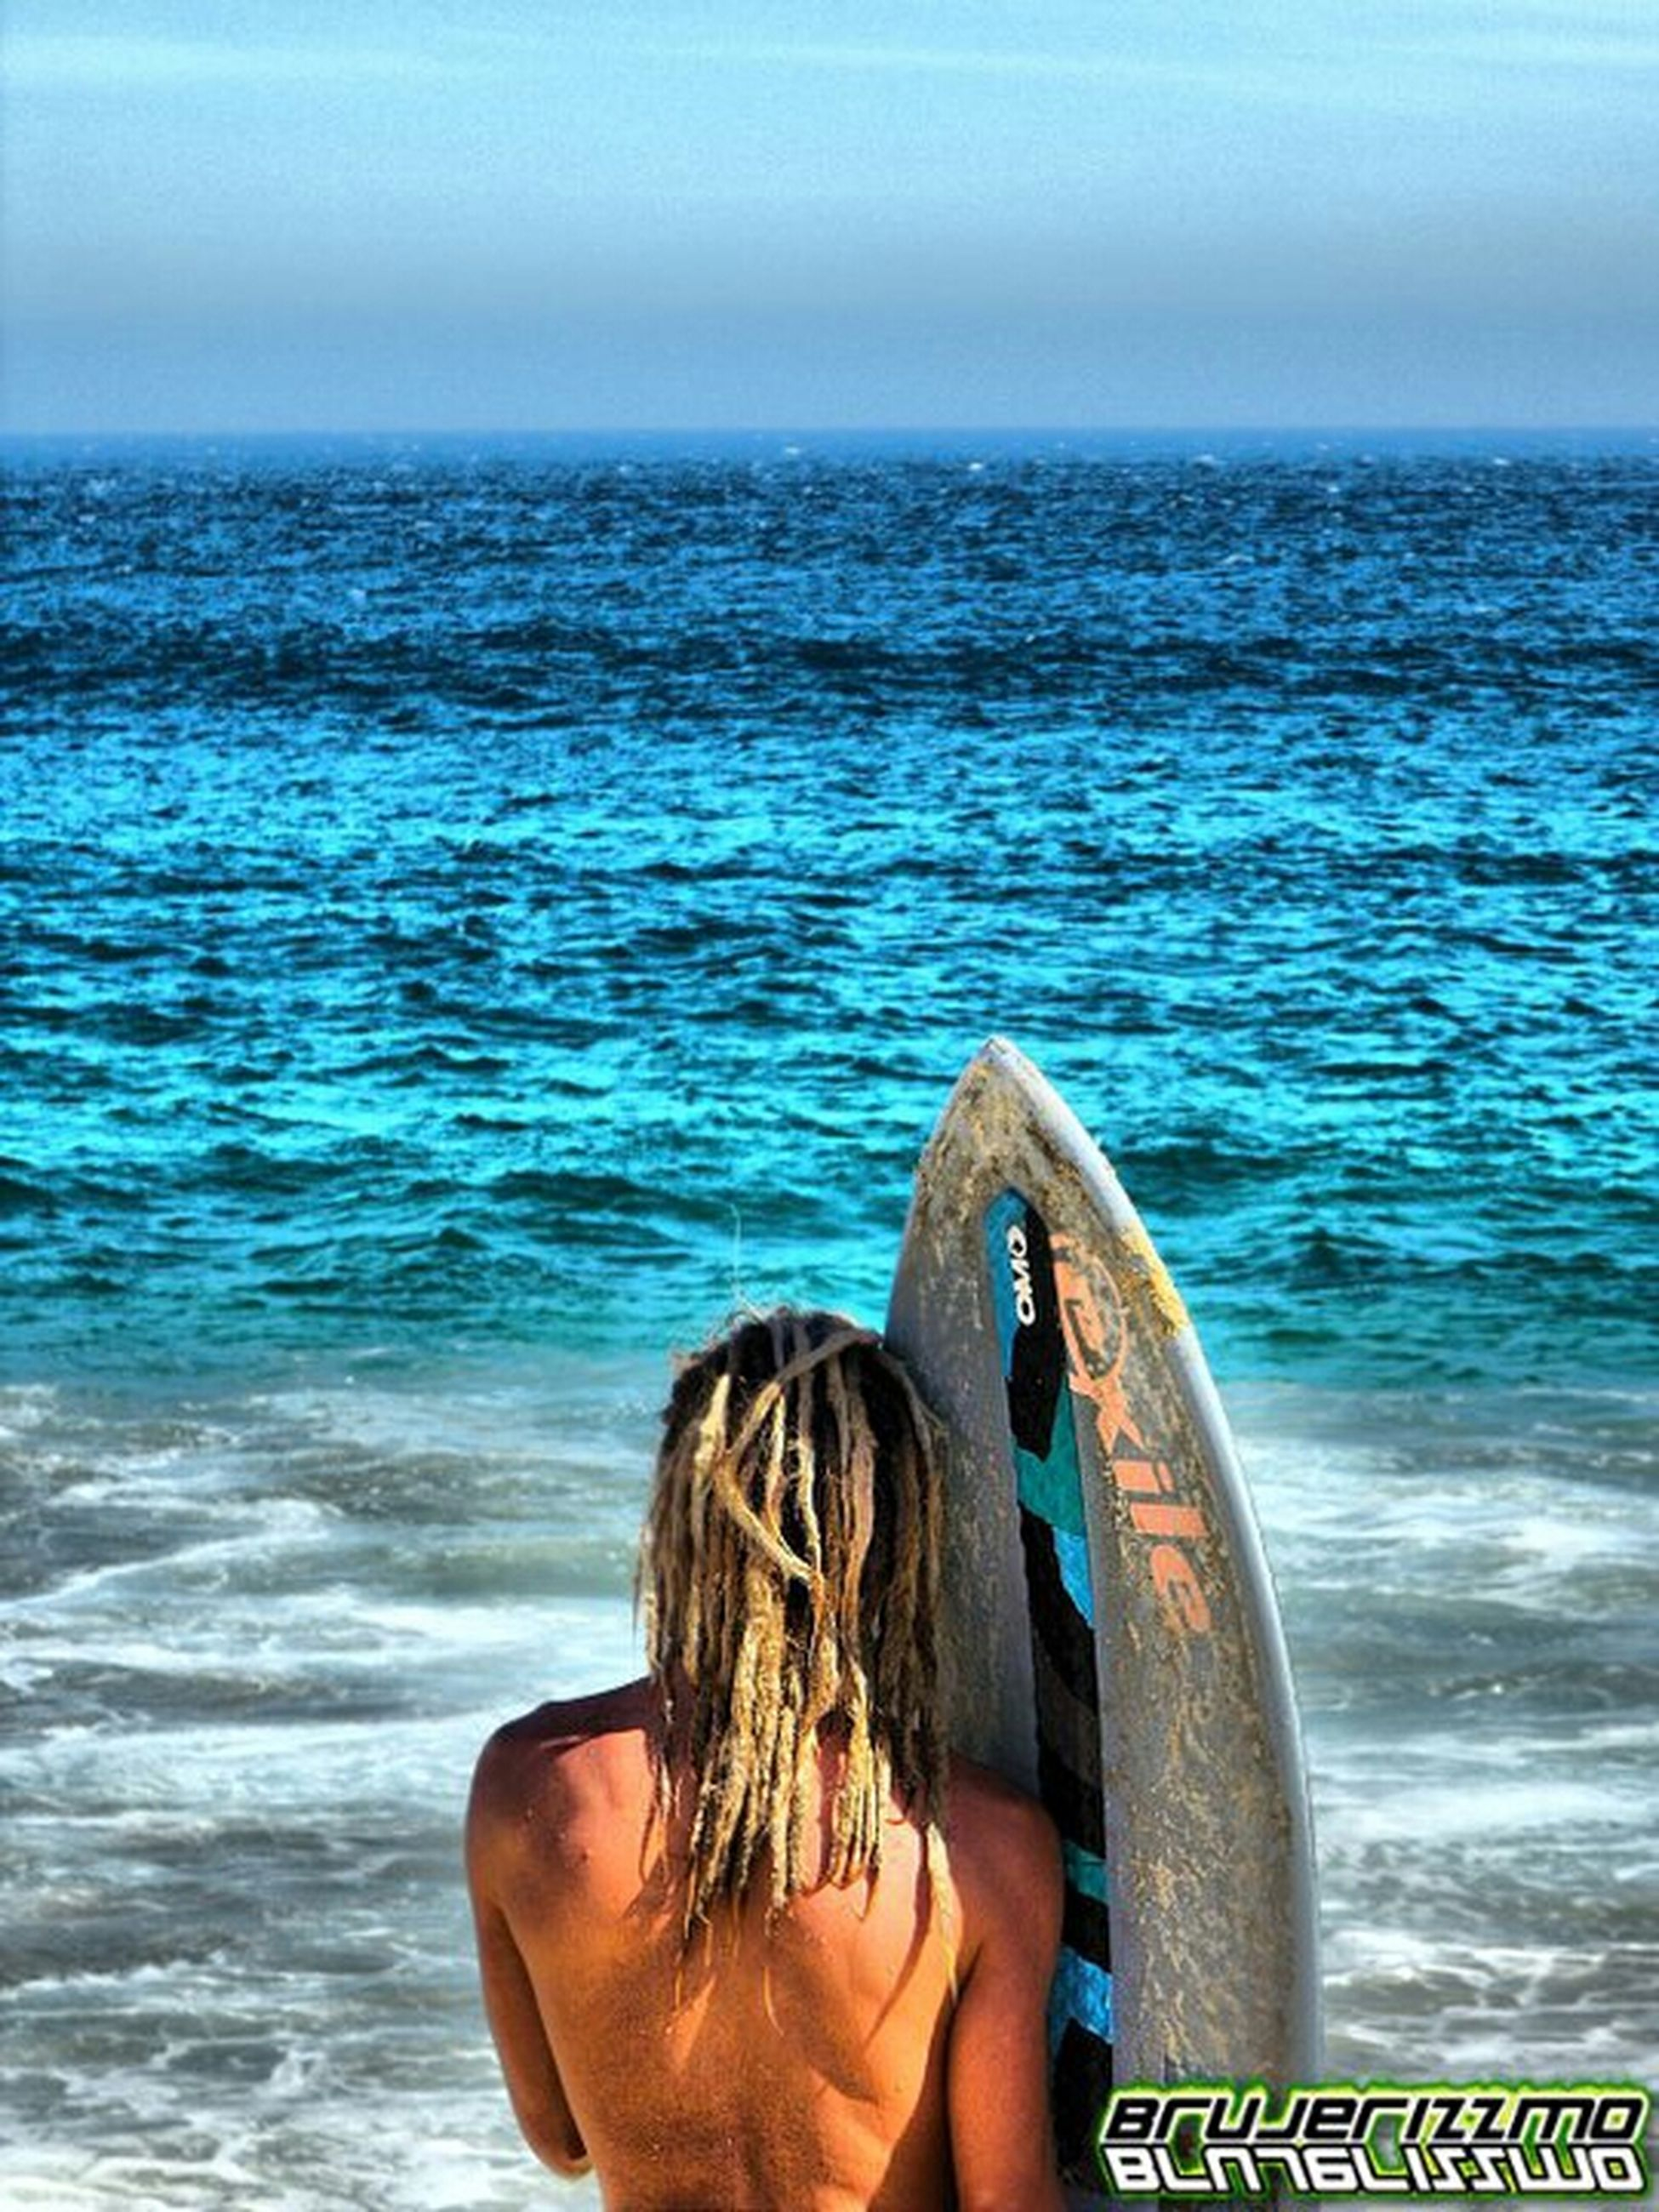 sea, water, lifestyles, leisure activity, horizon over water, rear view, blue, sky, rippled, vacations, nautical vessel, person, scenics, men, nature, waist up, beauty in nature, tranquil scene